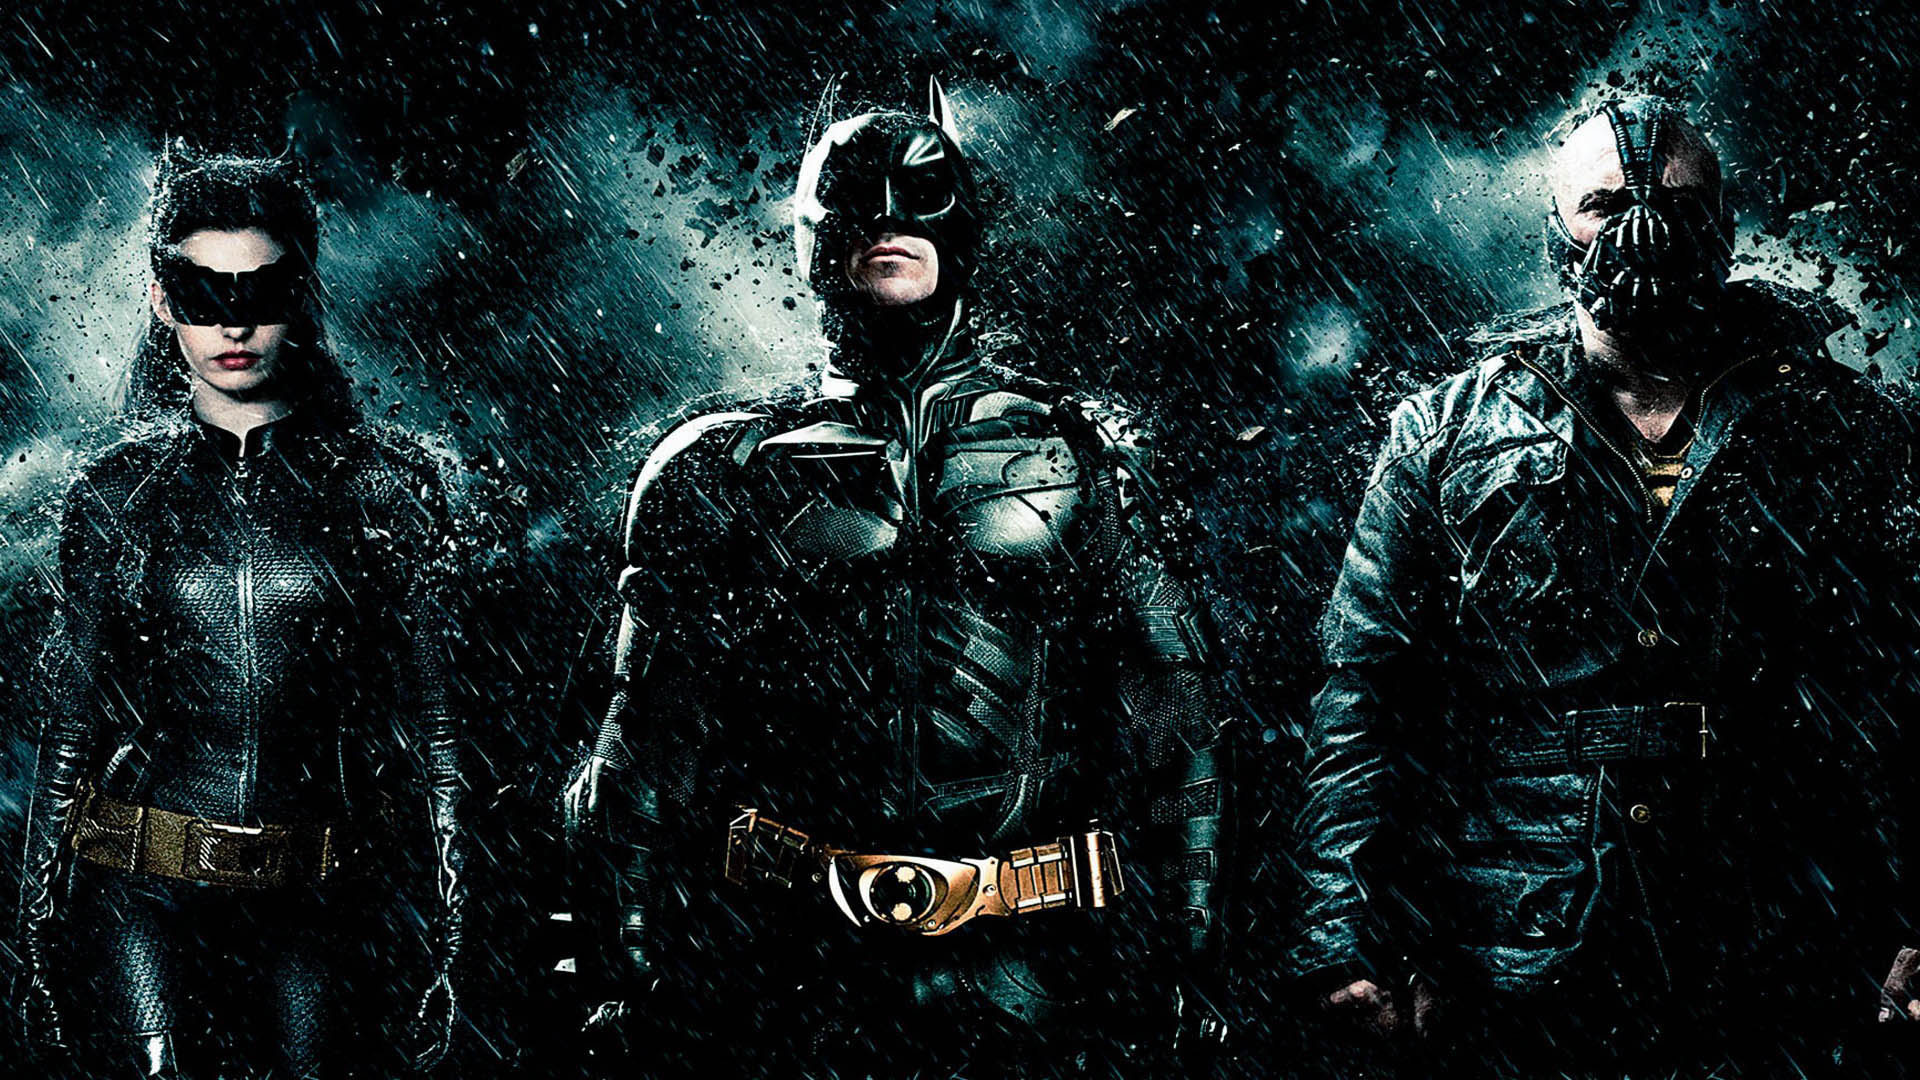 Batman Desktop Wallpaper 1920x1080 1920x1080